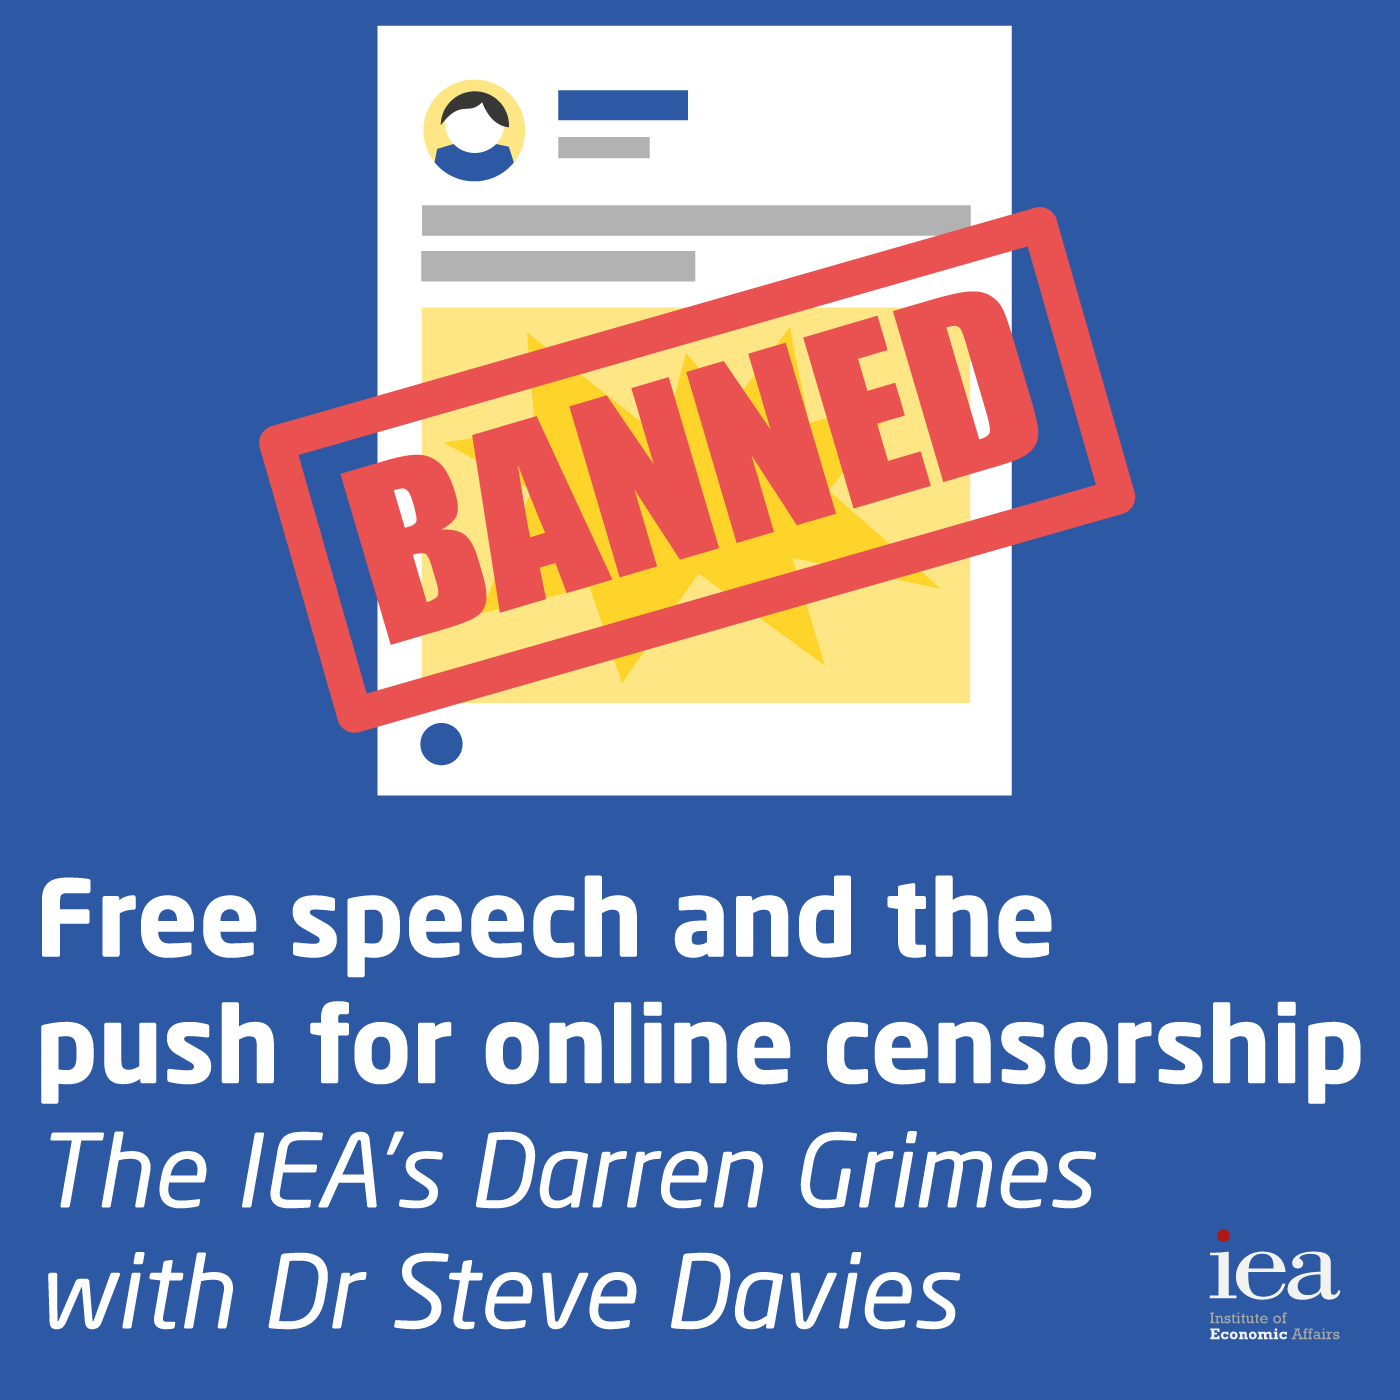 Free speech and the push for online censorship